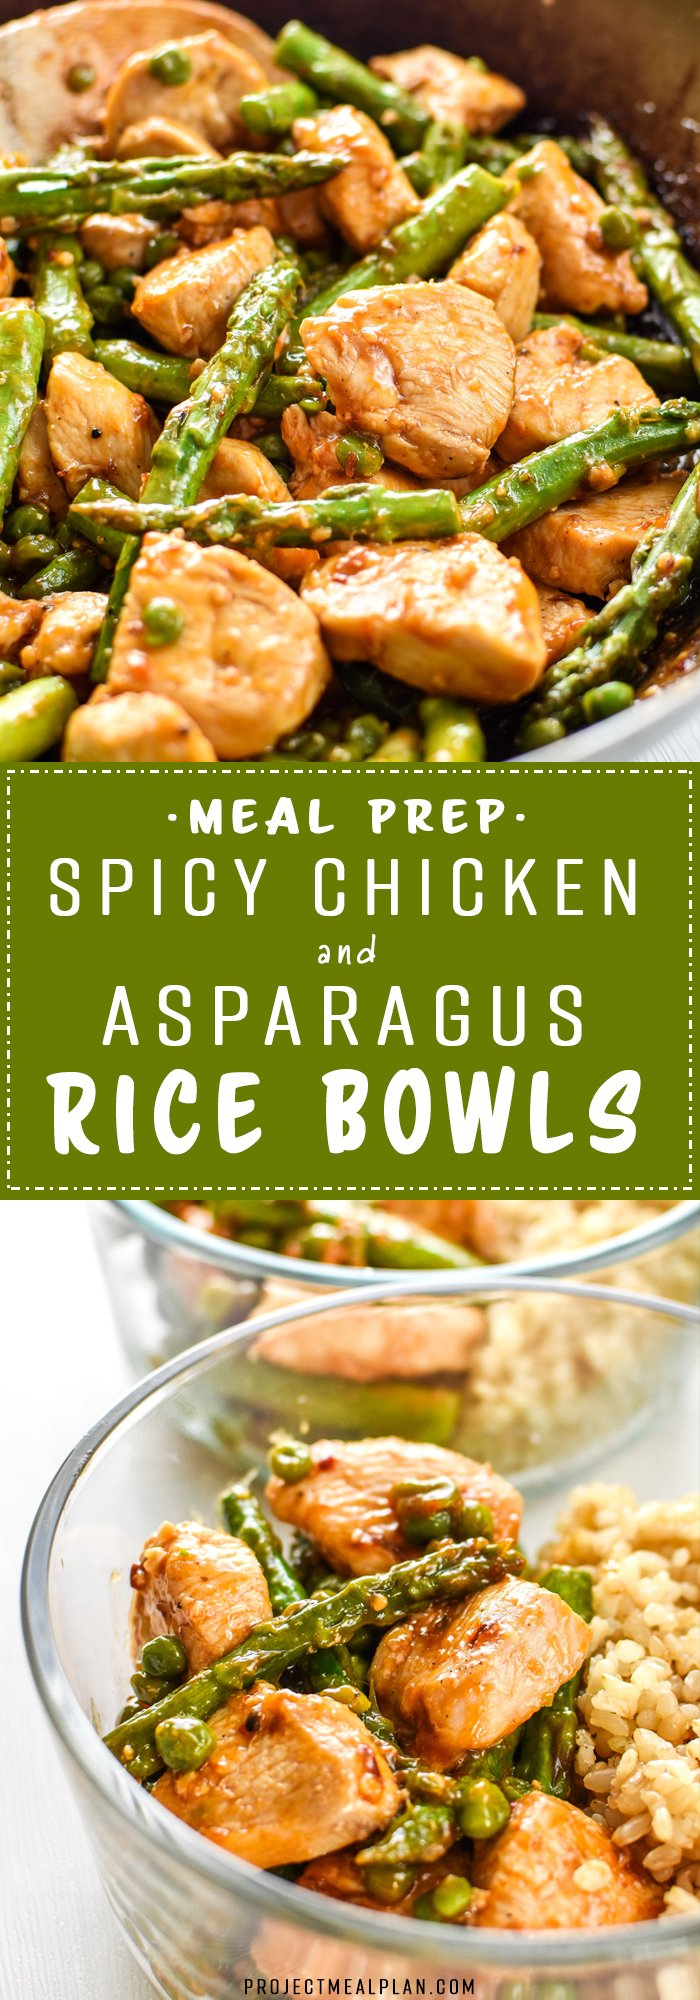 Meal Prep Spicy Chicken and Asparagus Rice Bowls - A simple stir-fry style recipe that's quick and easy to throw together. Pair with white or brown rice for the perfect Sunday Meal Prep bowls! - ProjectMealPlan.com